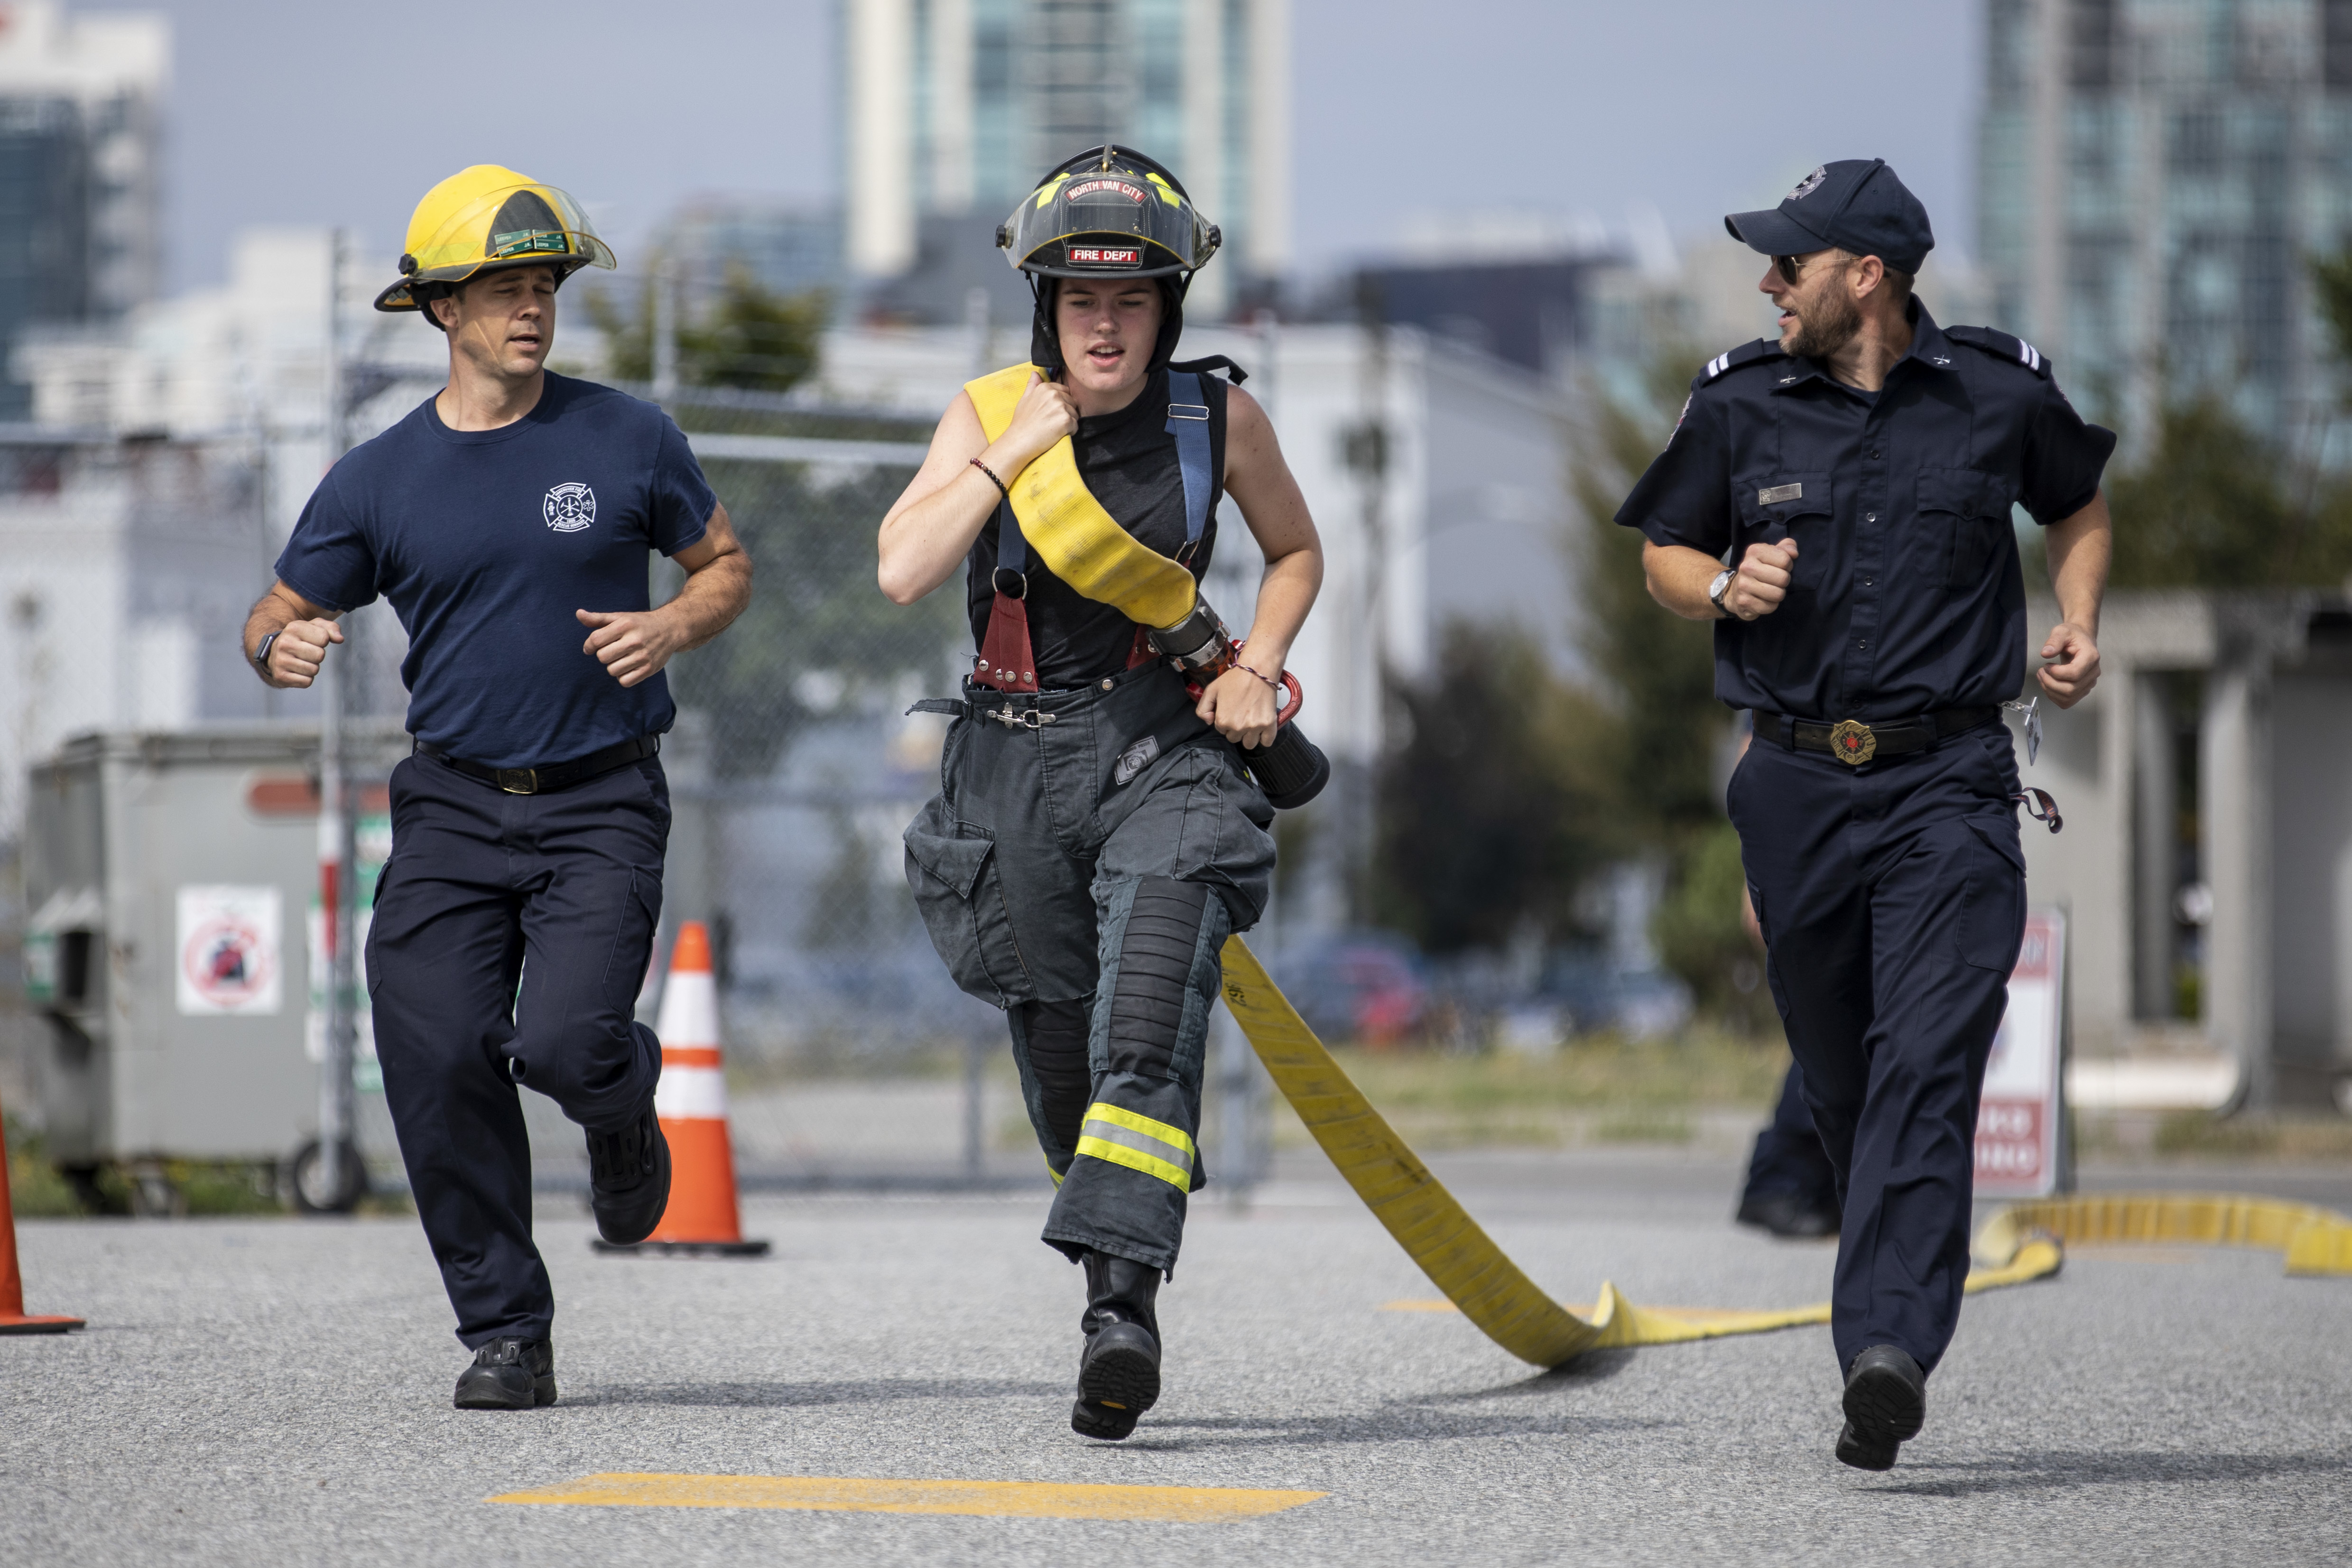 A Camp Ignite participant runs with a firehose as part of a training exercise for endurance and strength. (Ben Nelms/CBC)